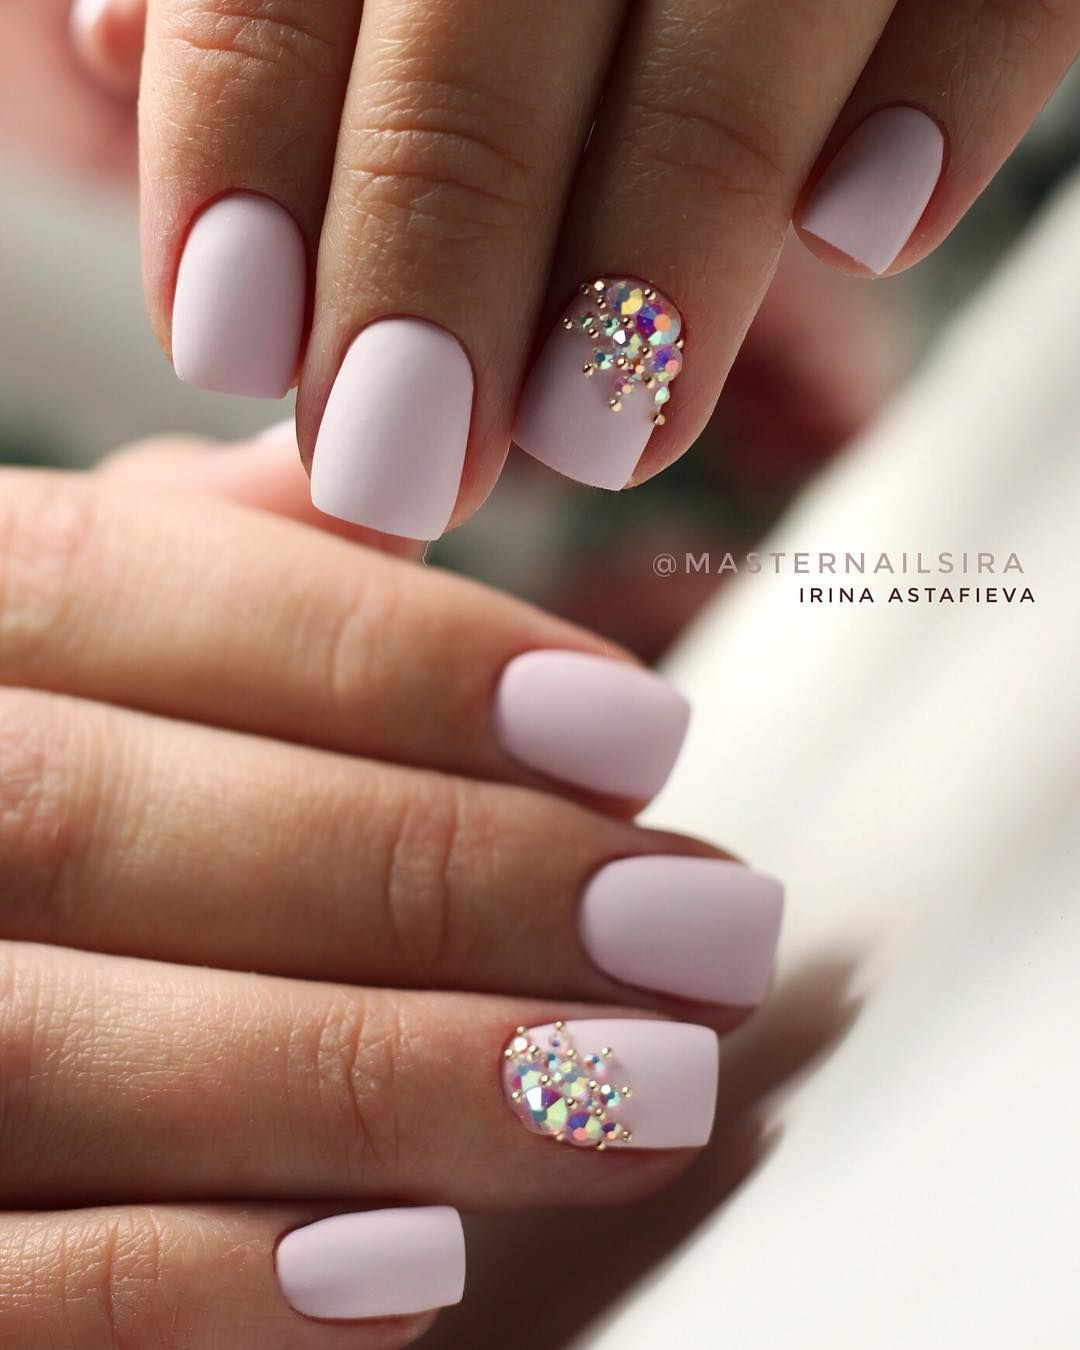 48 Stylish Acrylic White Nail Art Designs and Ideas